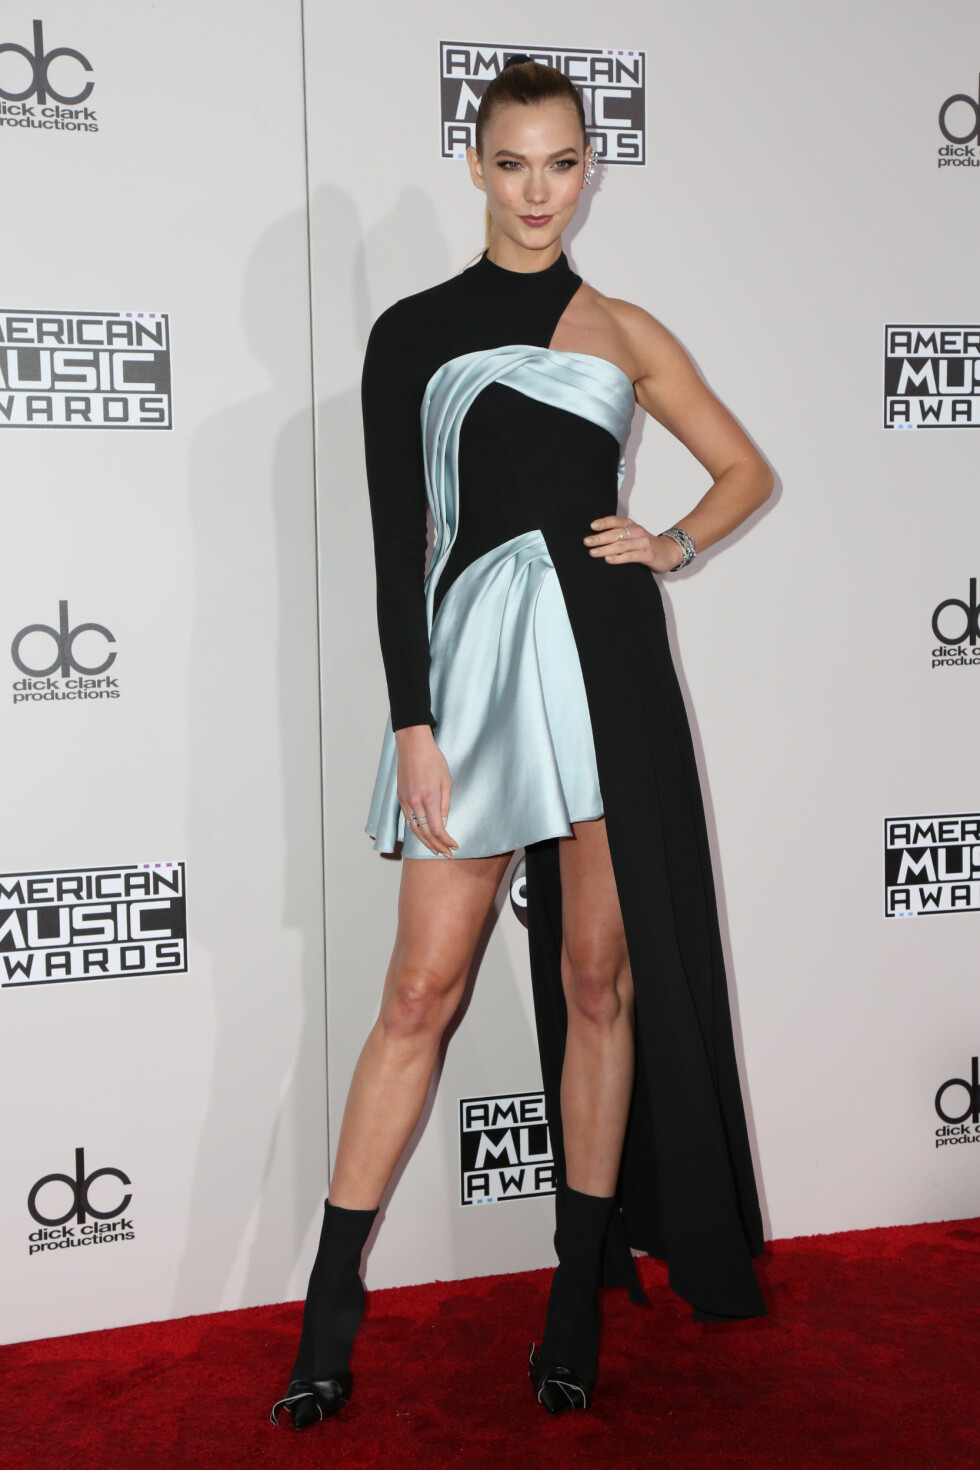 AMERICAN MUSIC AWARDS: Karlie Kloss Foto: SipaUSA